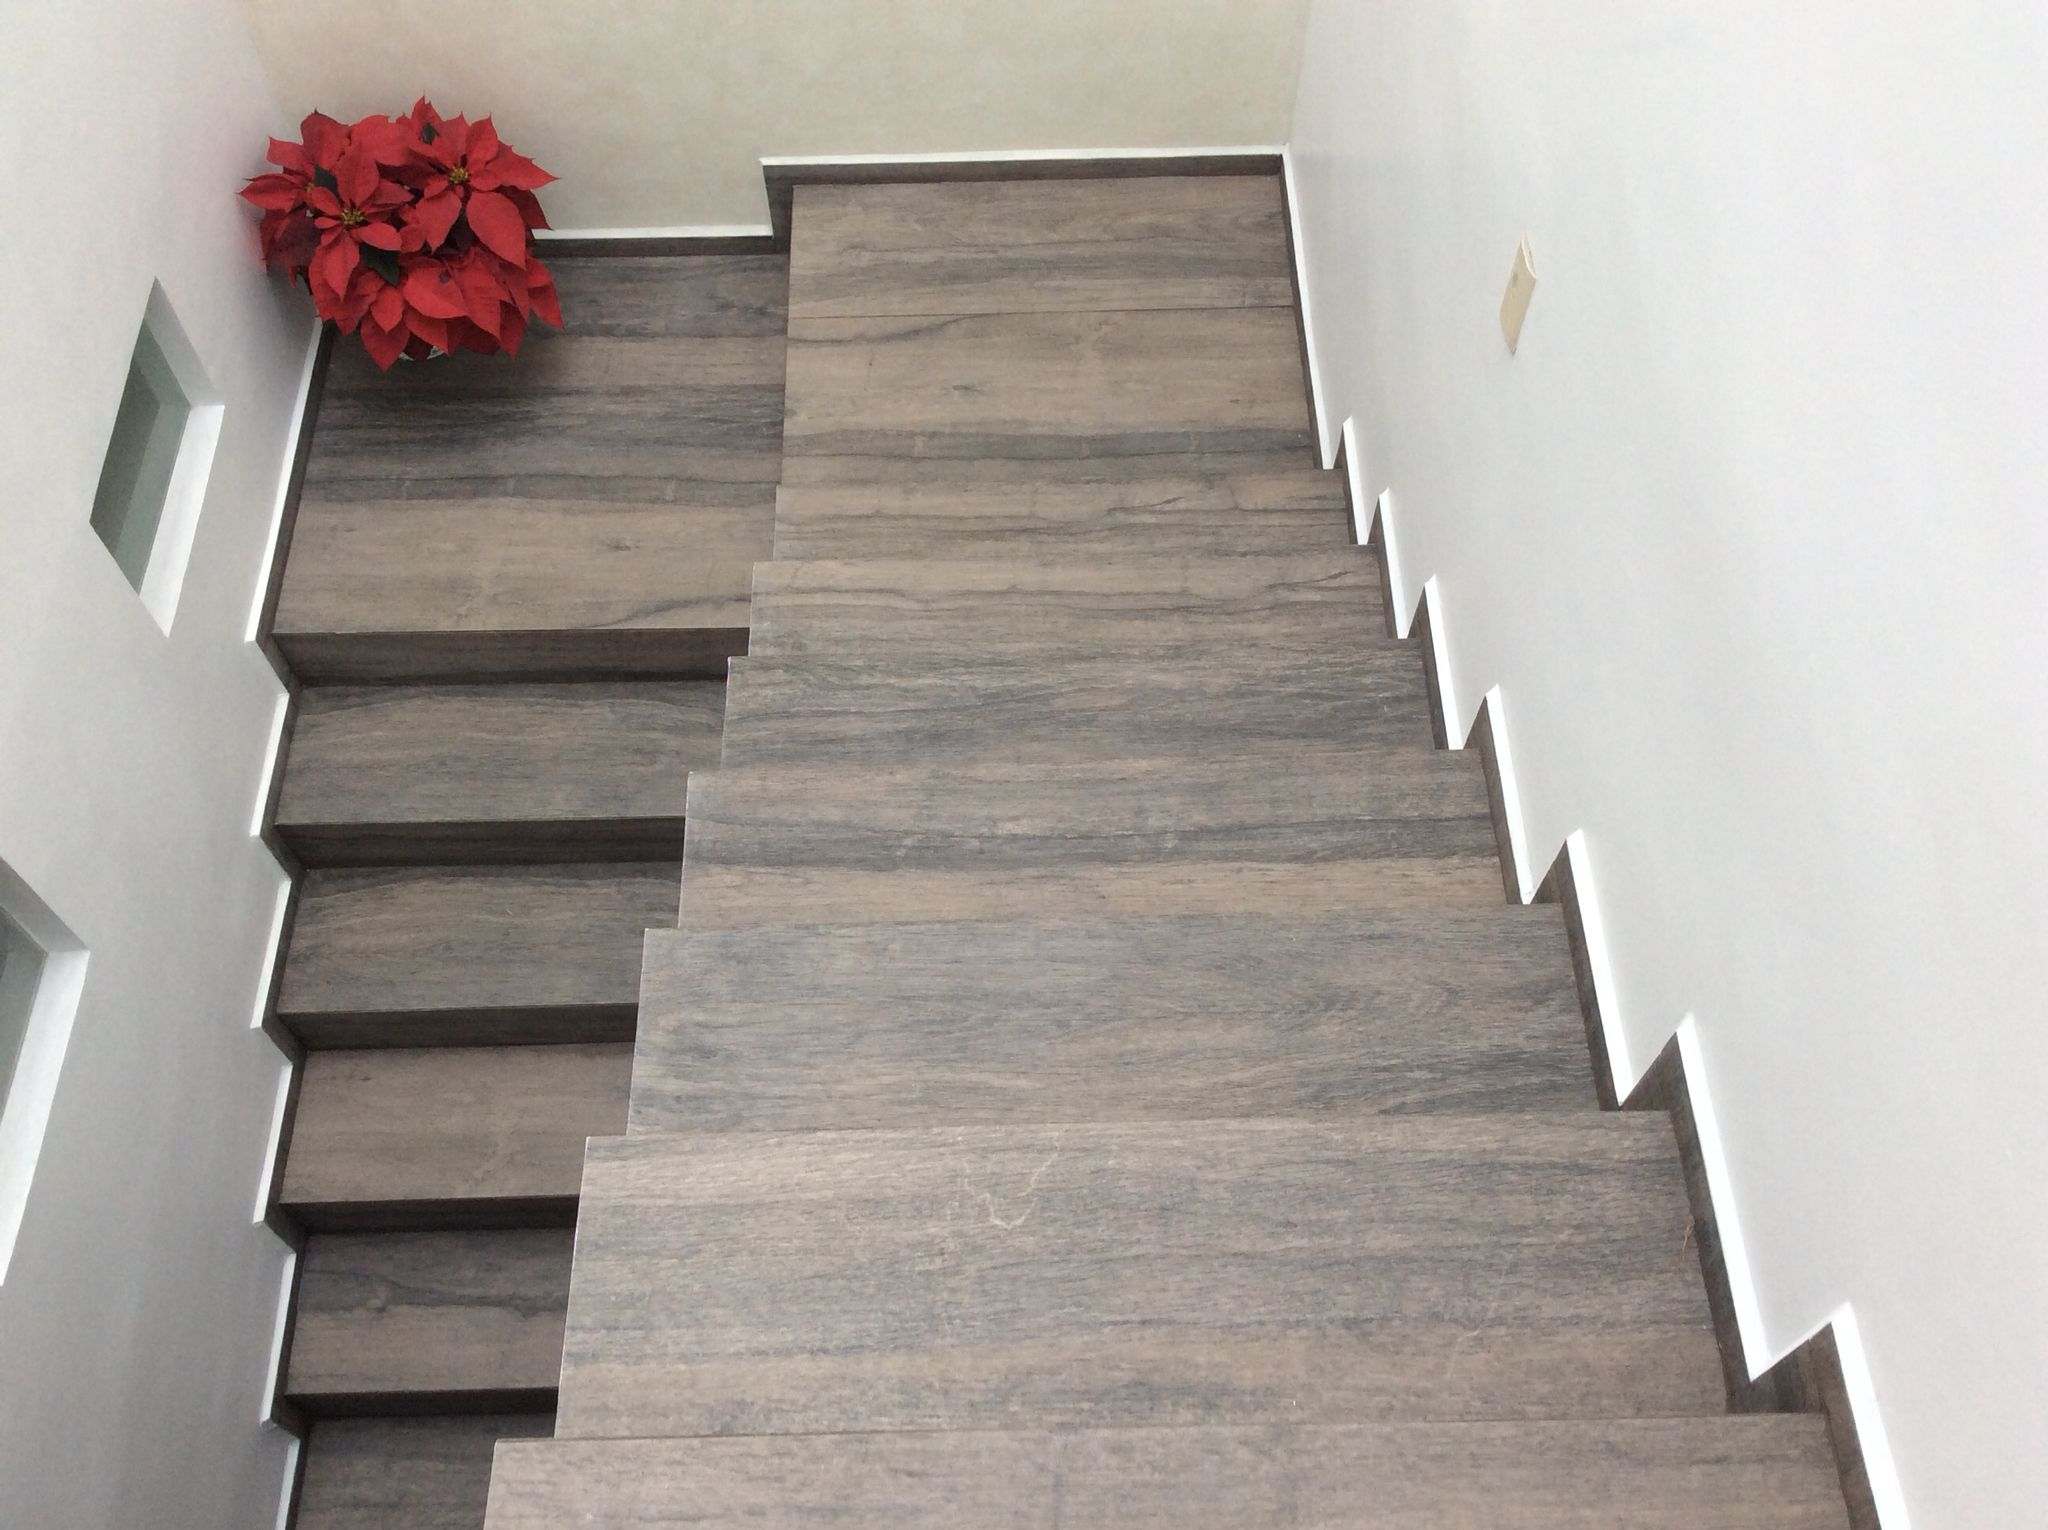 Escaleras porcelanato tipo madera casa lula architecture for De que color para un pasillo con escaleras